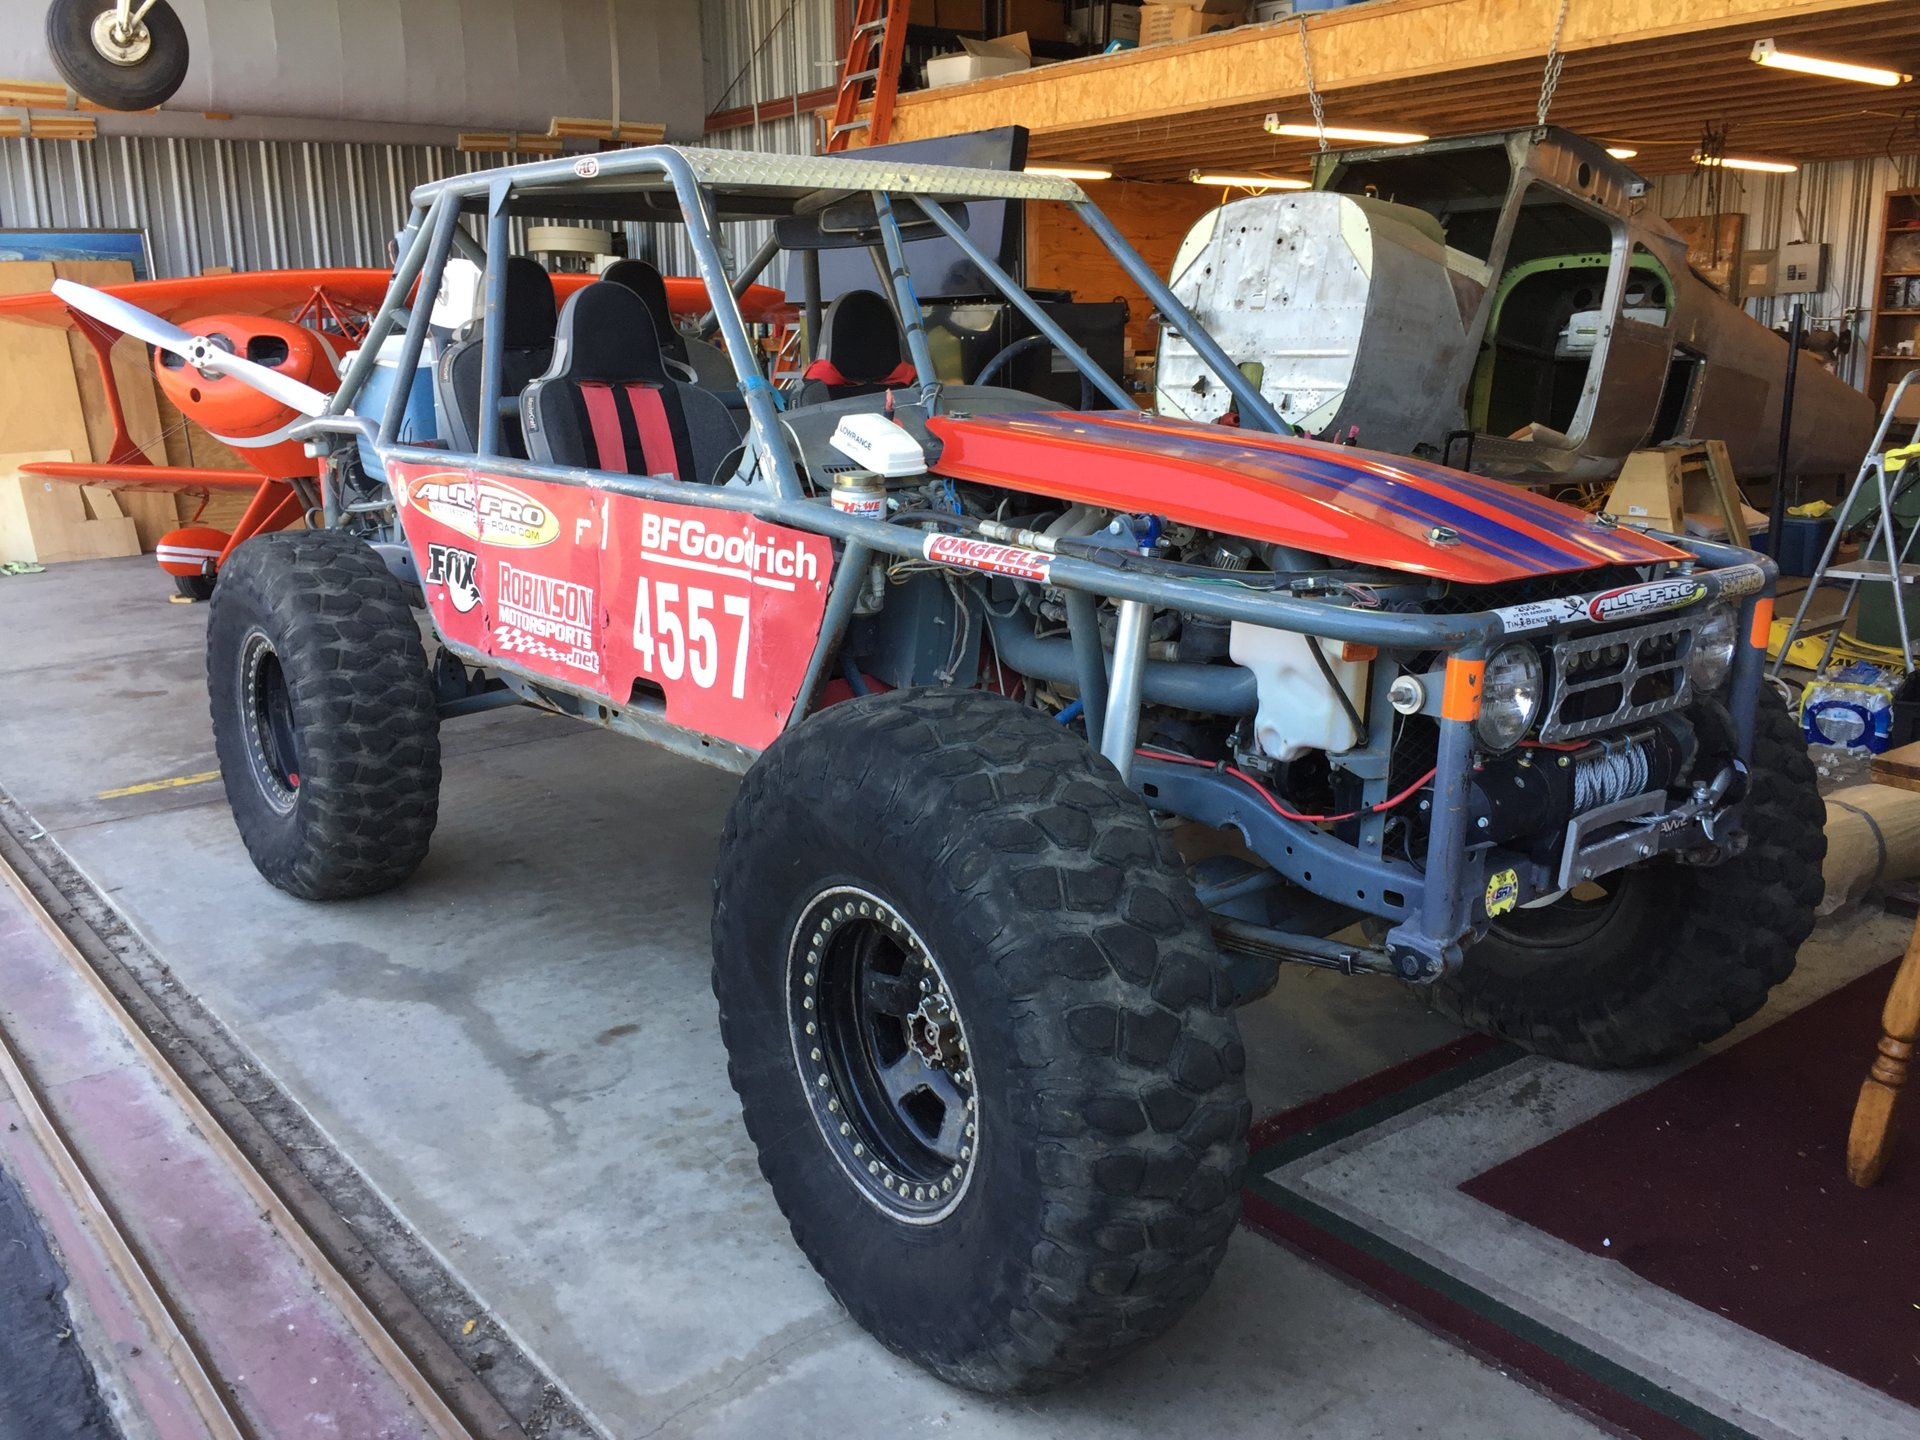 22re Engine For Sale >> For Sale: - Very capable 4 seat tube frame rock crawler ...